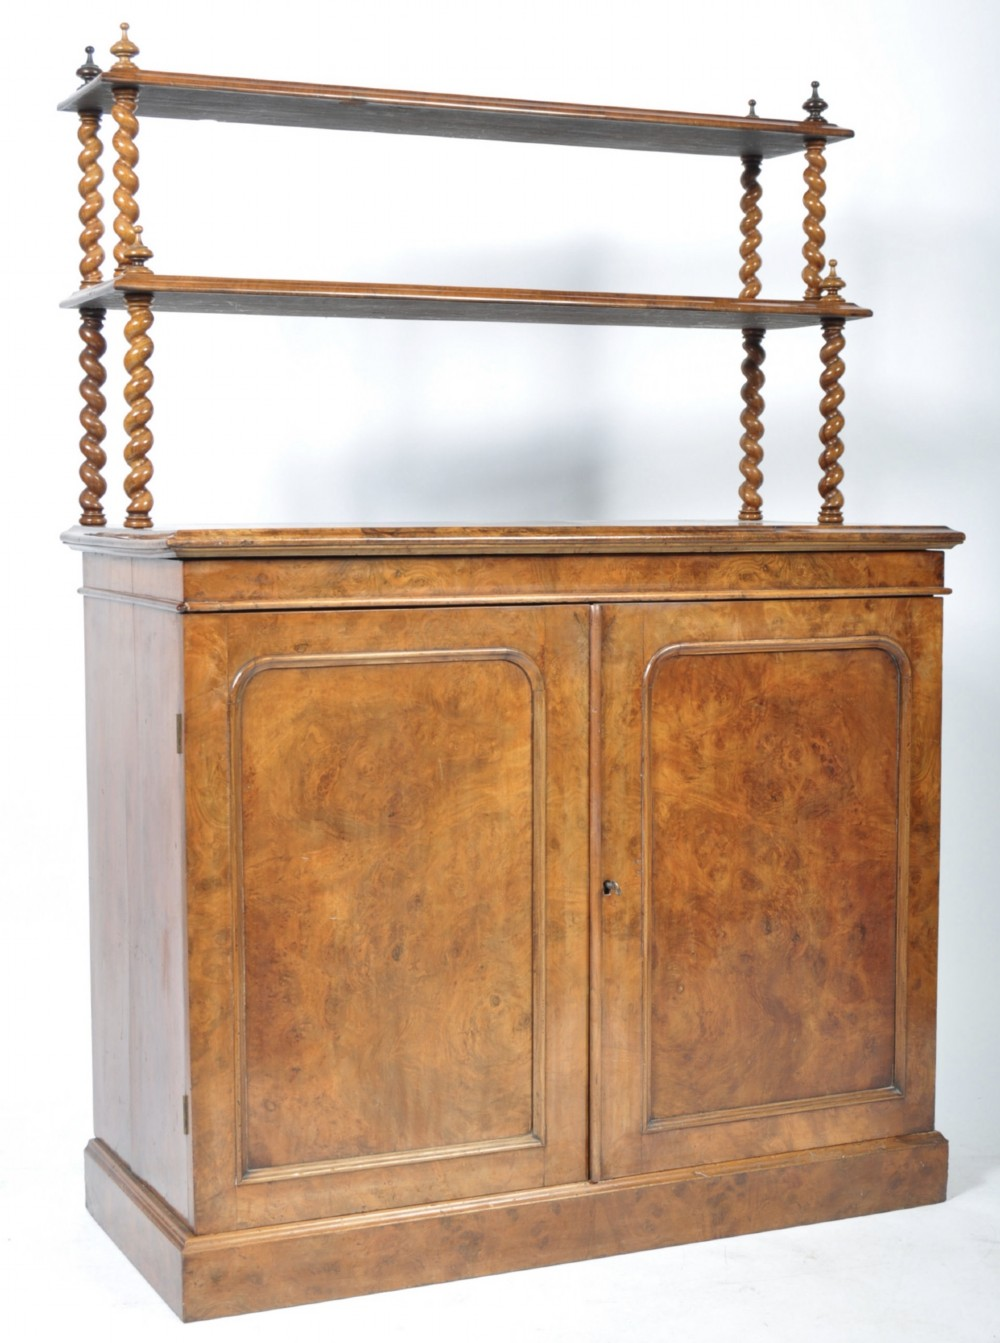 c19th burr walnut cabinet with shelves above